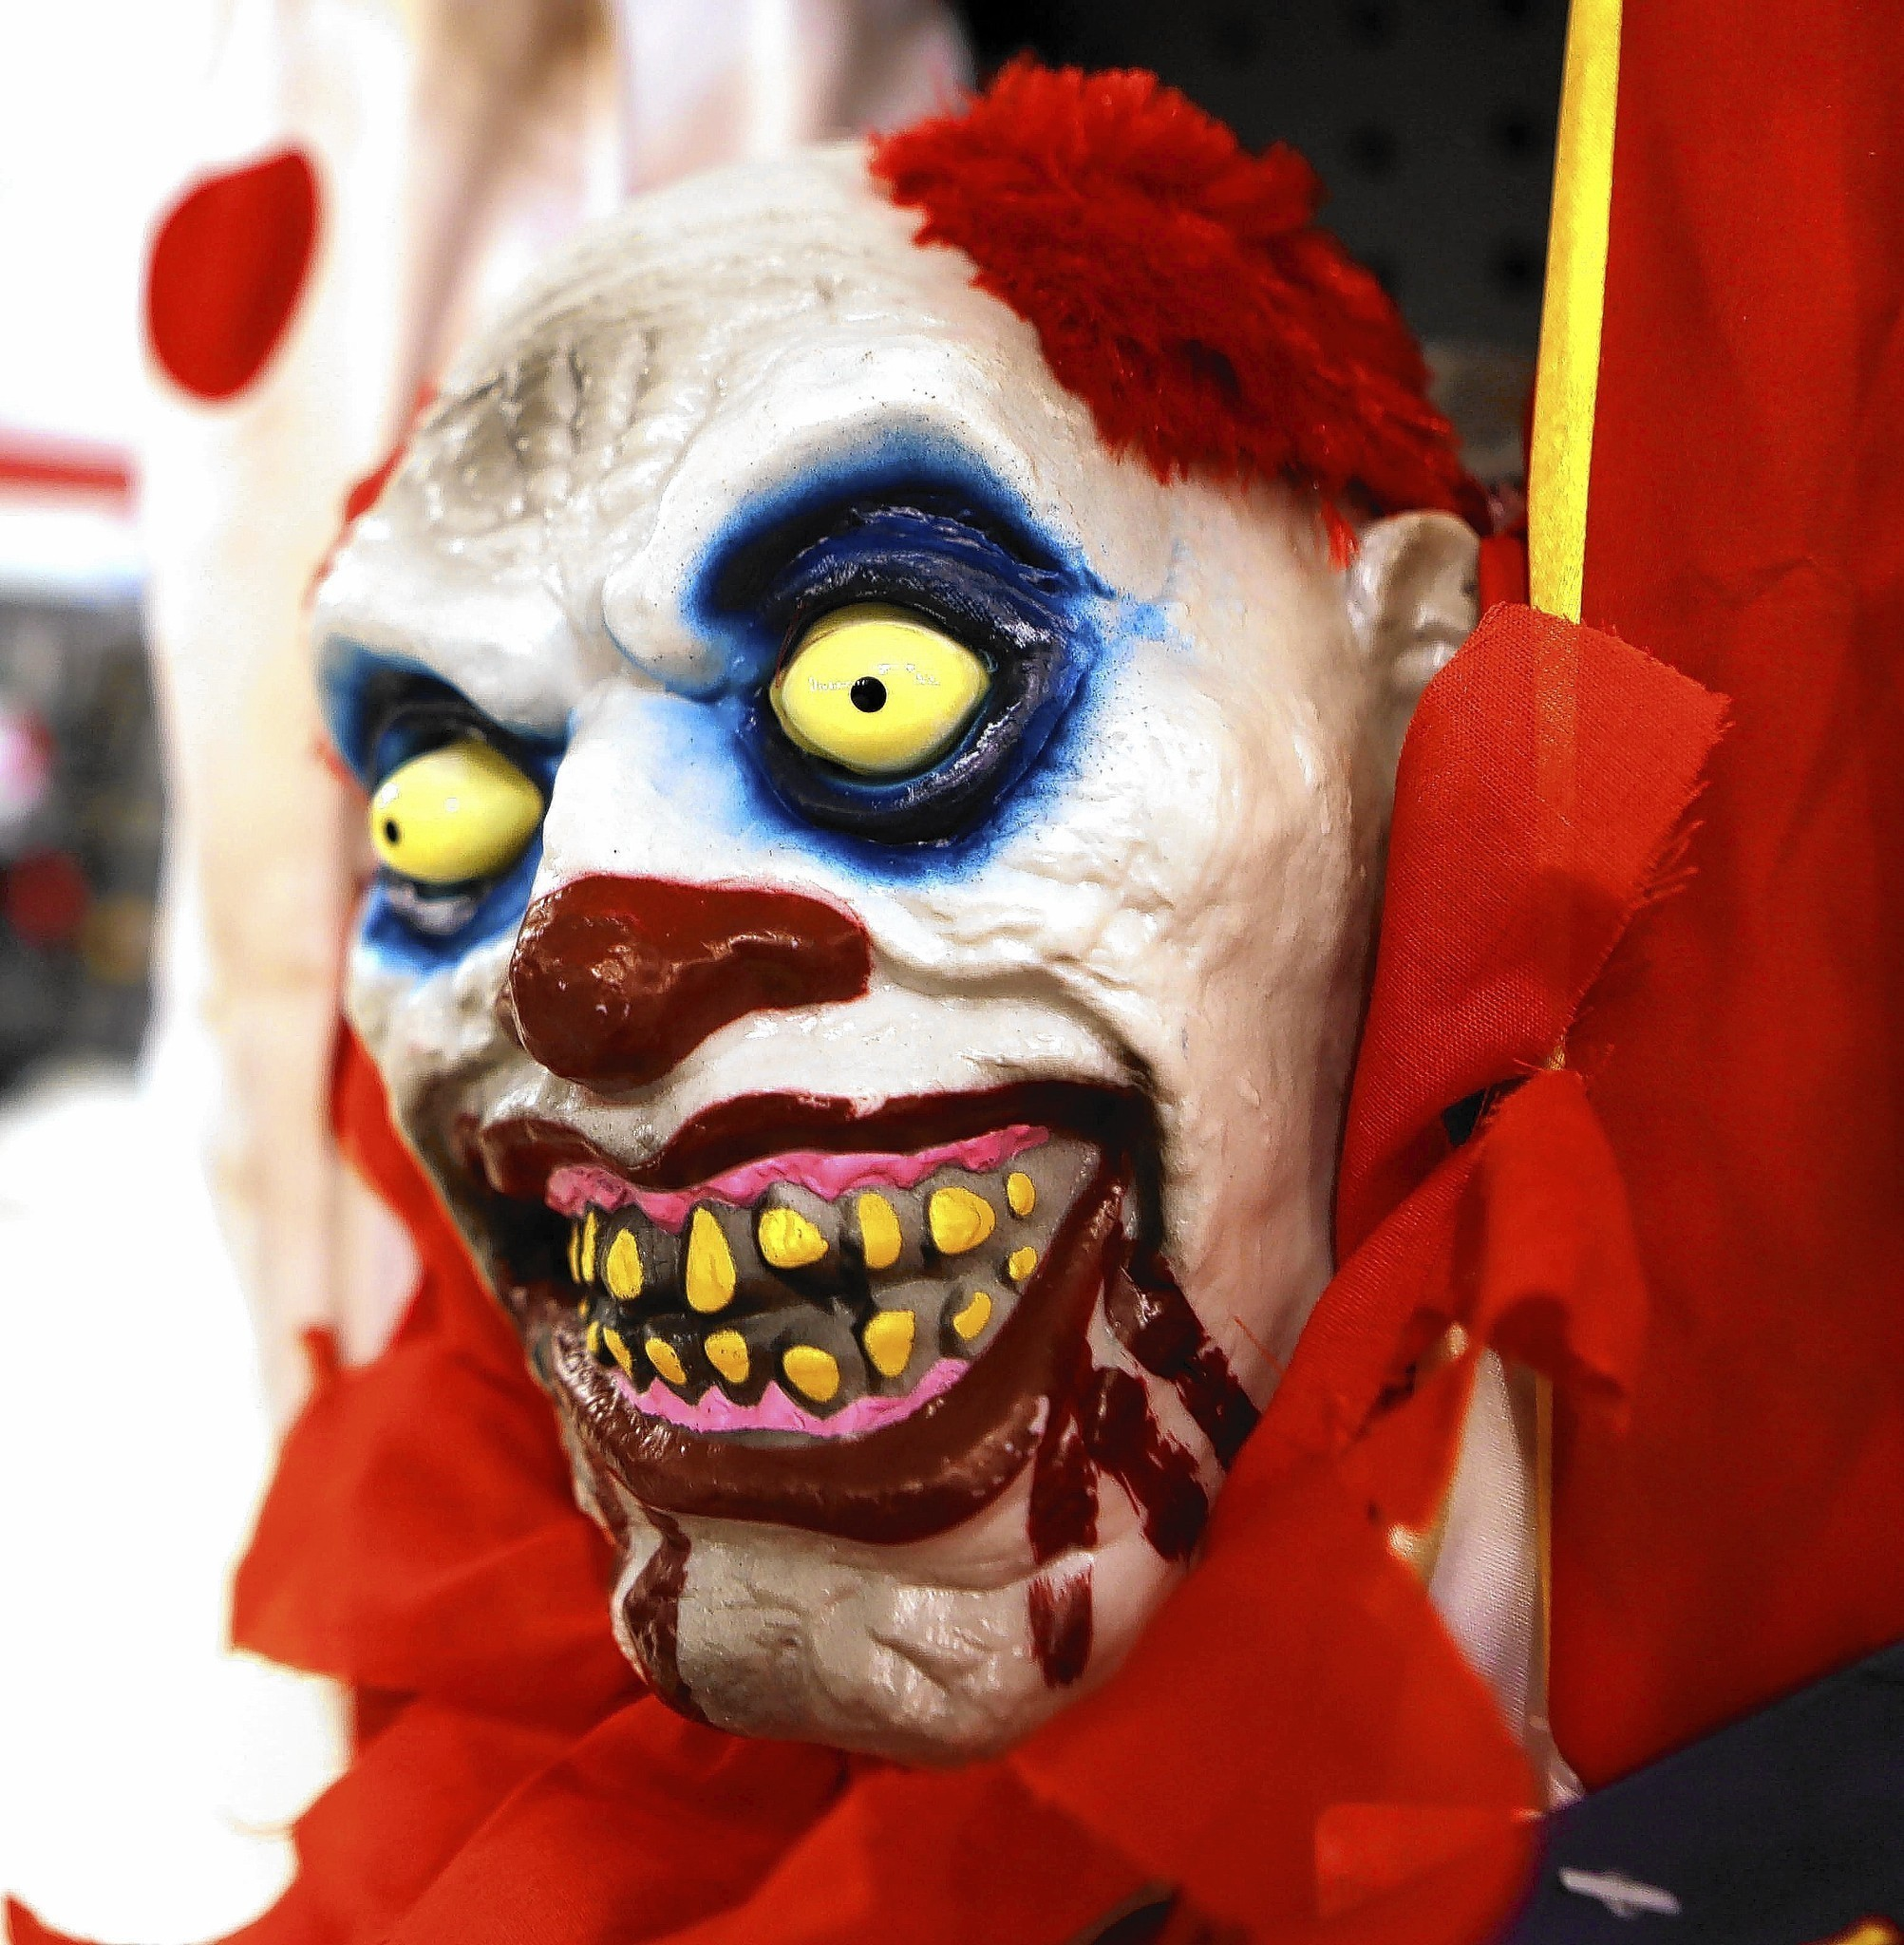 halloween stores get early jump on scary season - orlando sentinel